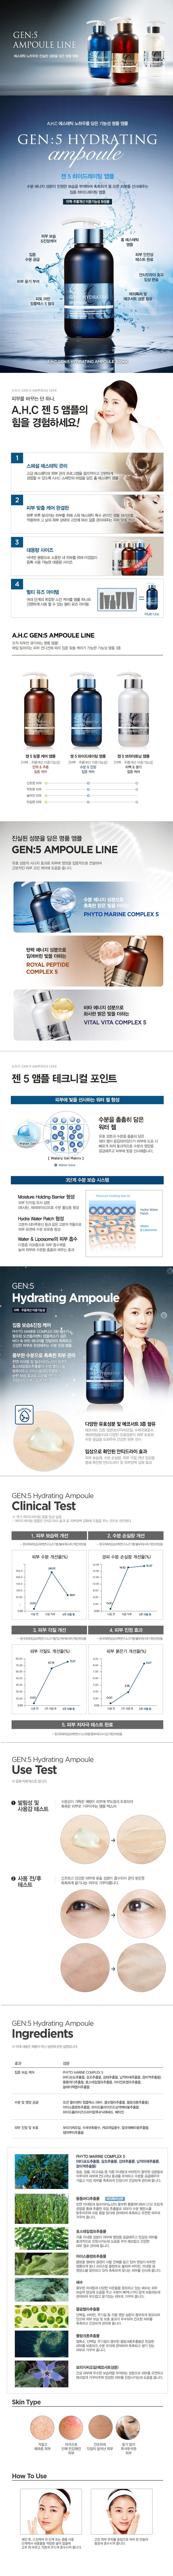 AHC Gen 5 Hydrating Ampoule 300ml malaysia singapore indonesia